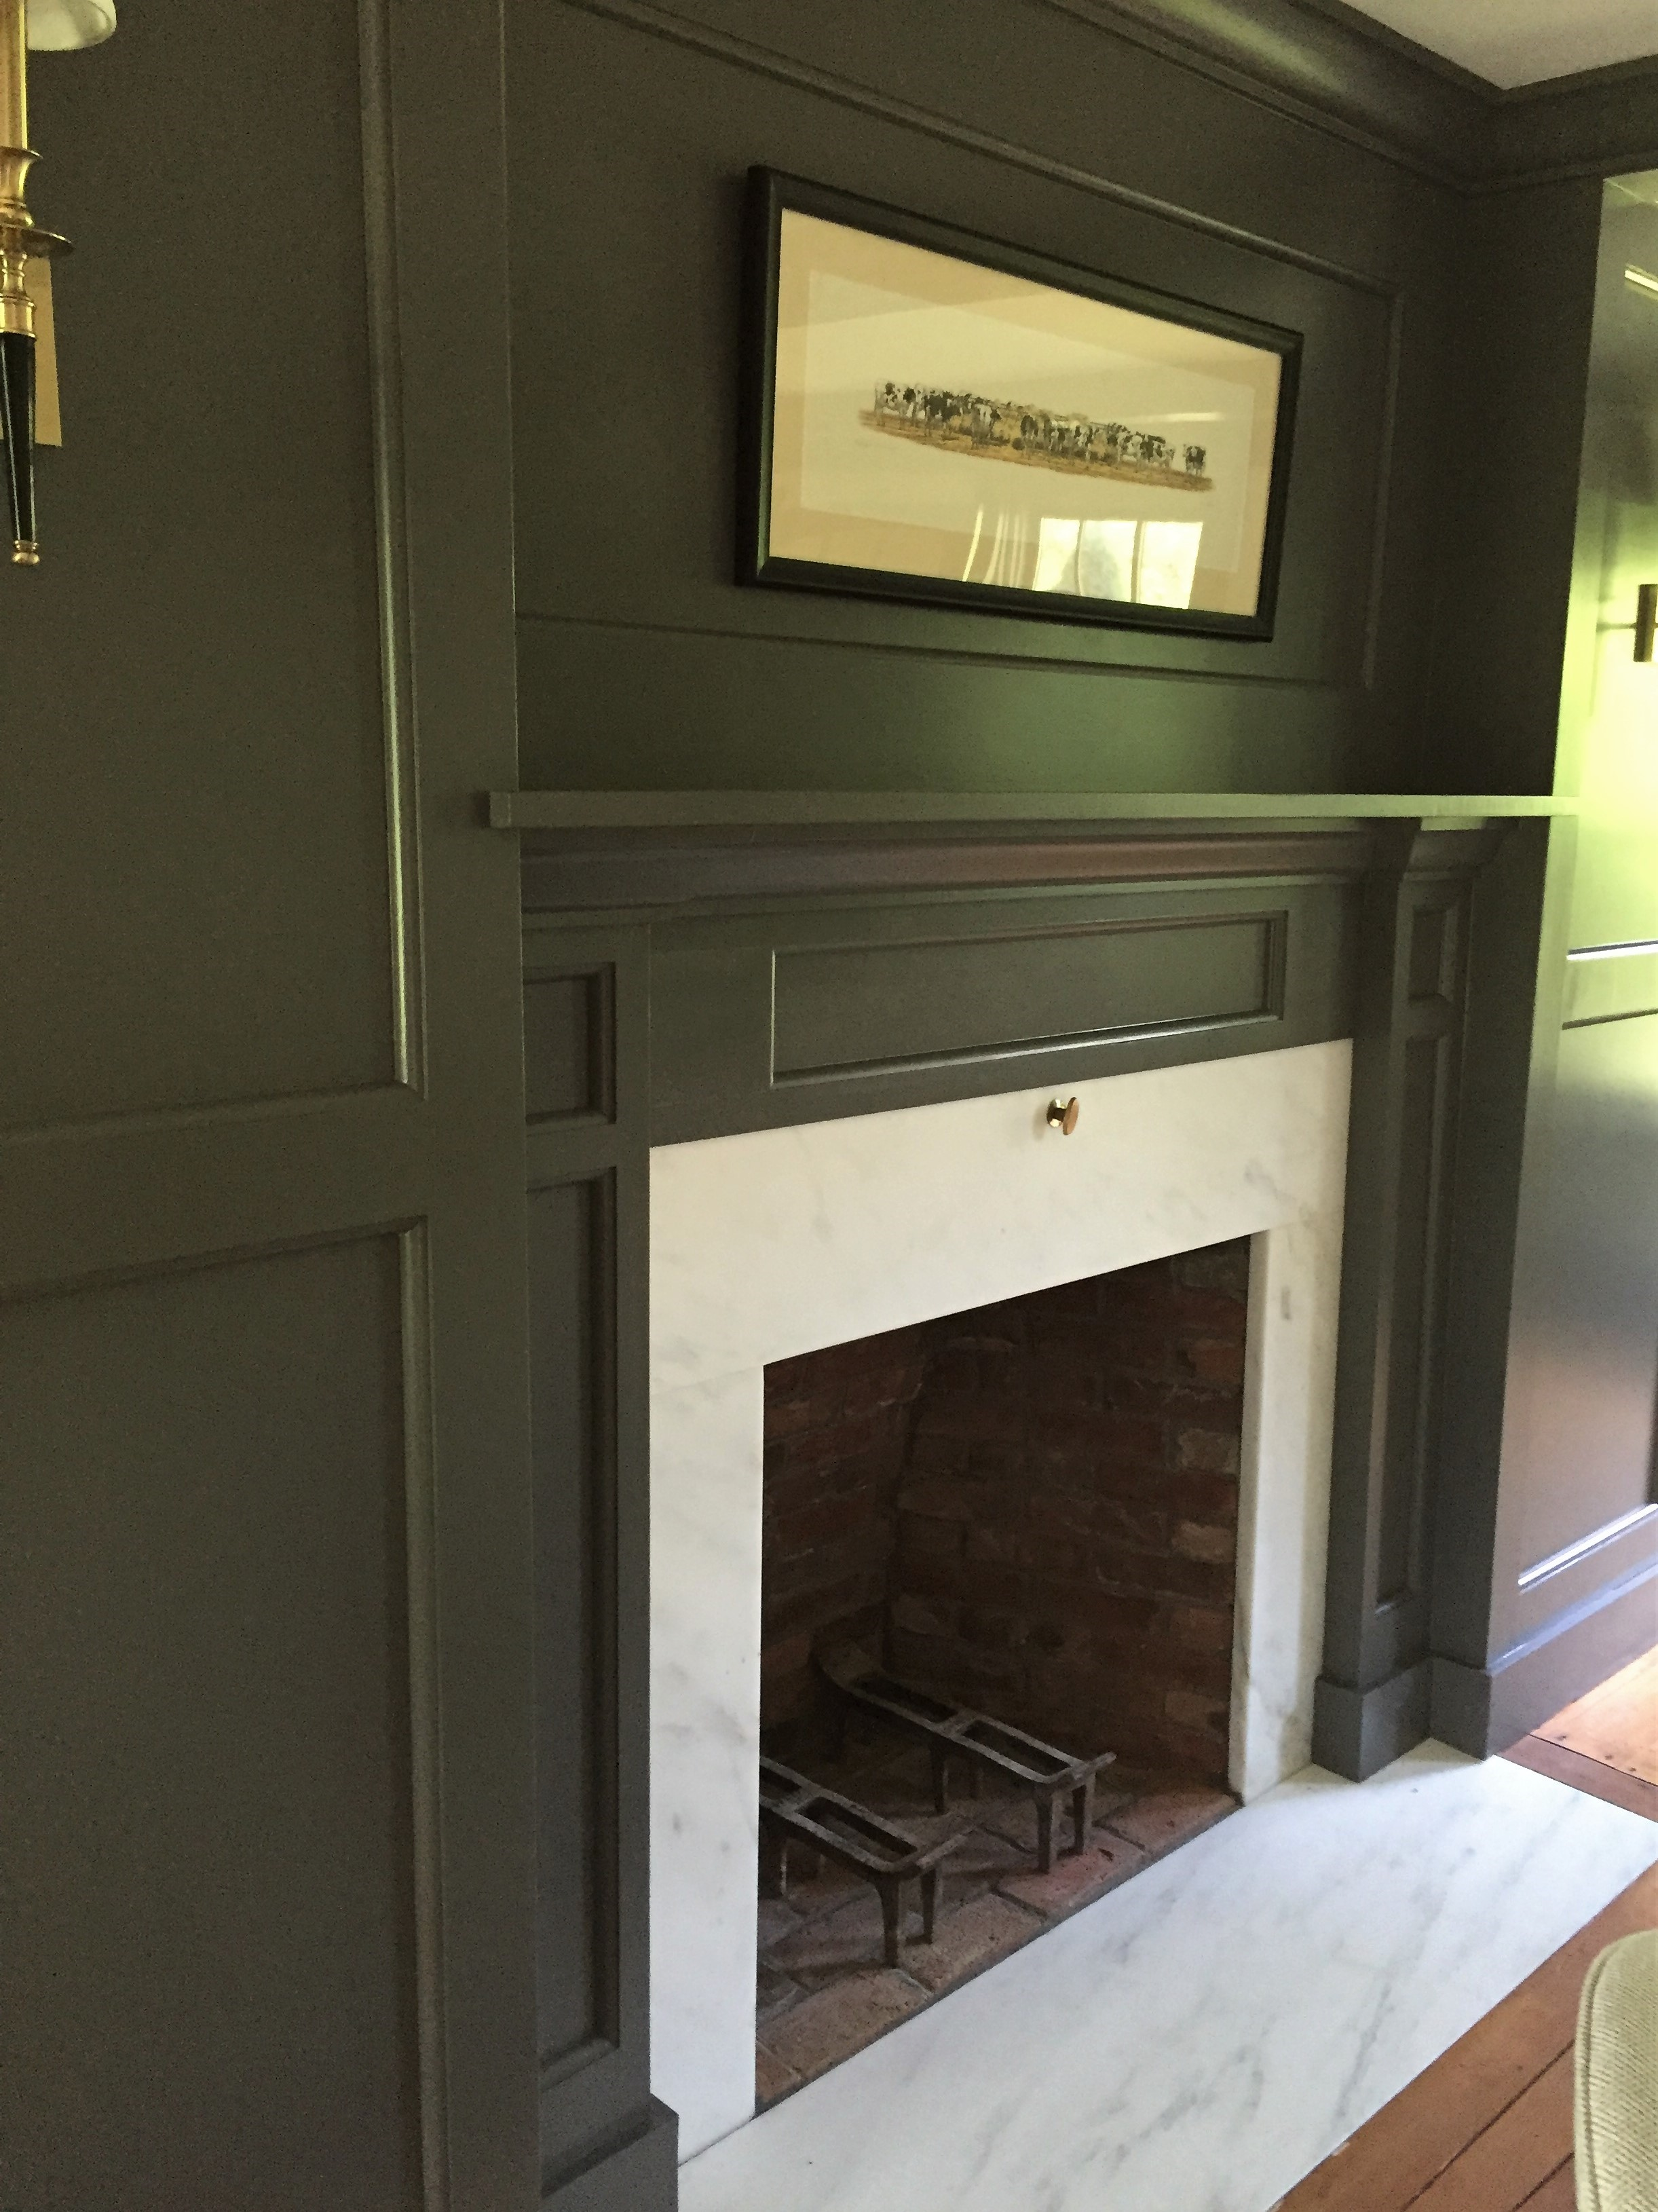 Another antique fireplace! If those bricks could speak! We did make some repairs and replaced the hearth and surround with Danby Marble, indigenous to this area of Vermont. Walls are painted  Benjamin Moore  Kendall Charcoal and add to the coziness of the room.